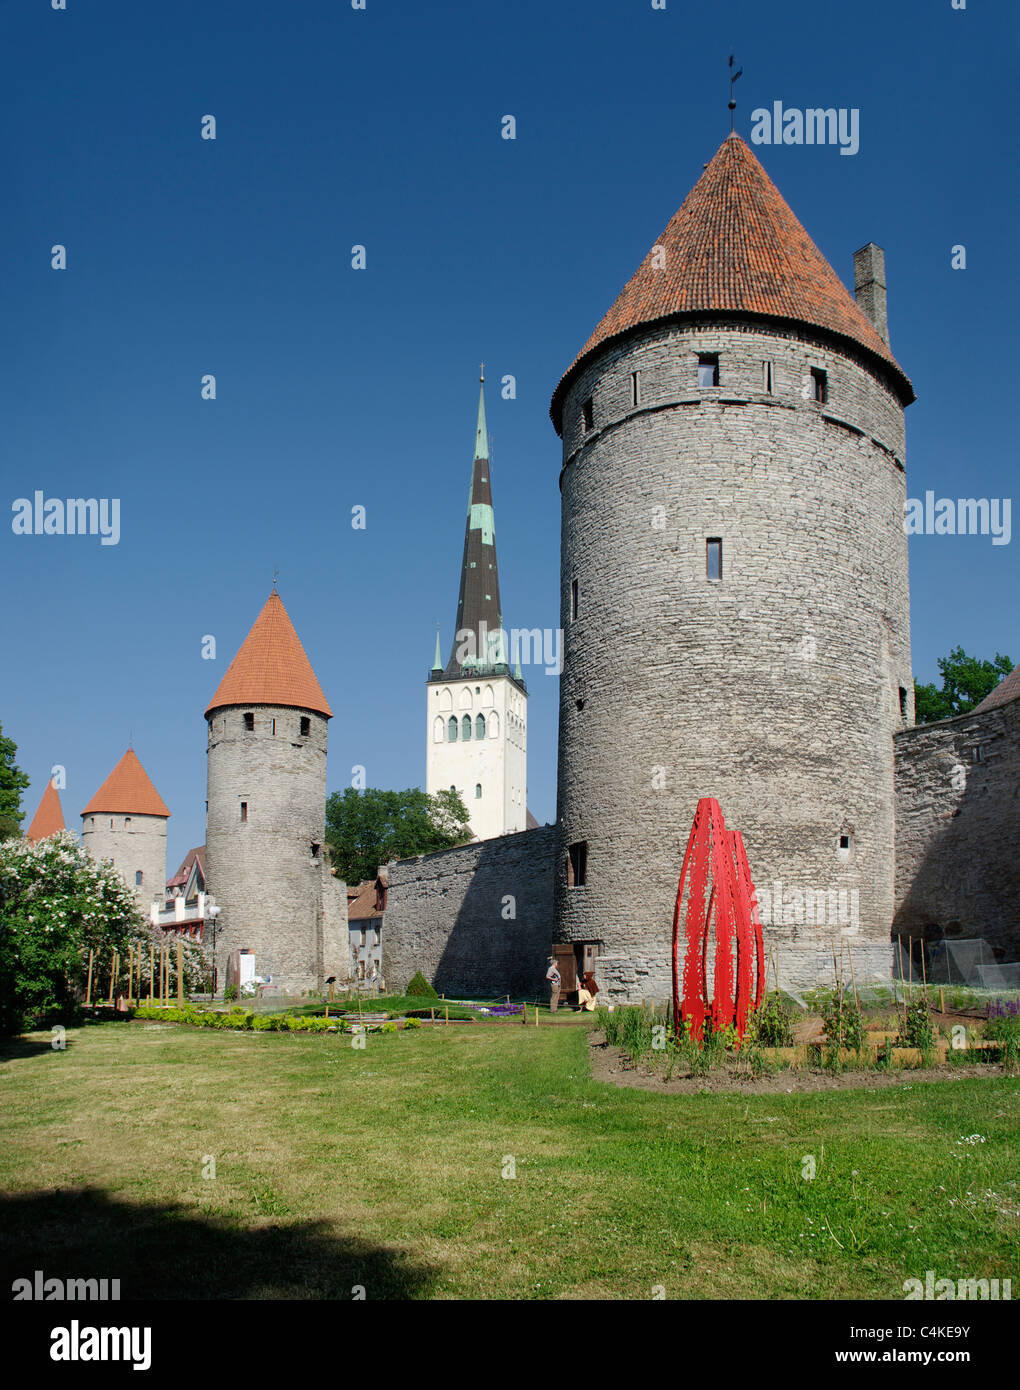 Tallinn City Wall With Towers, Koismäe Torn In Front Of and ST.Olaf`s Church In the Background - Stock Image